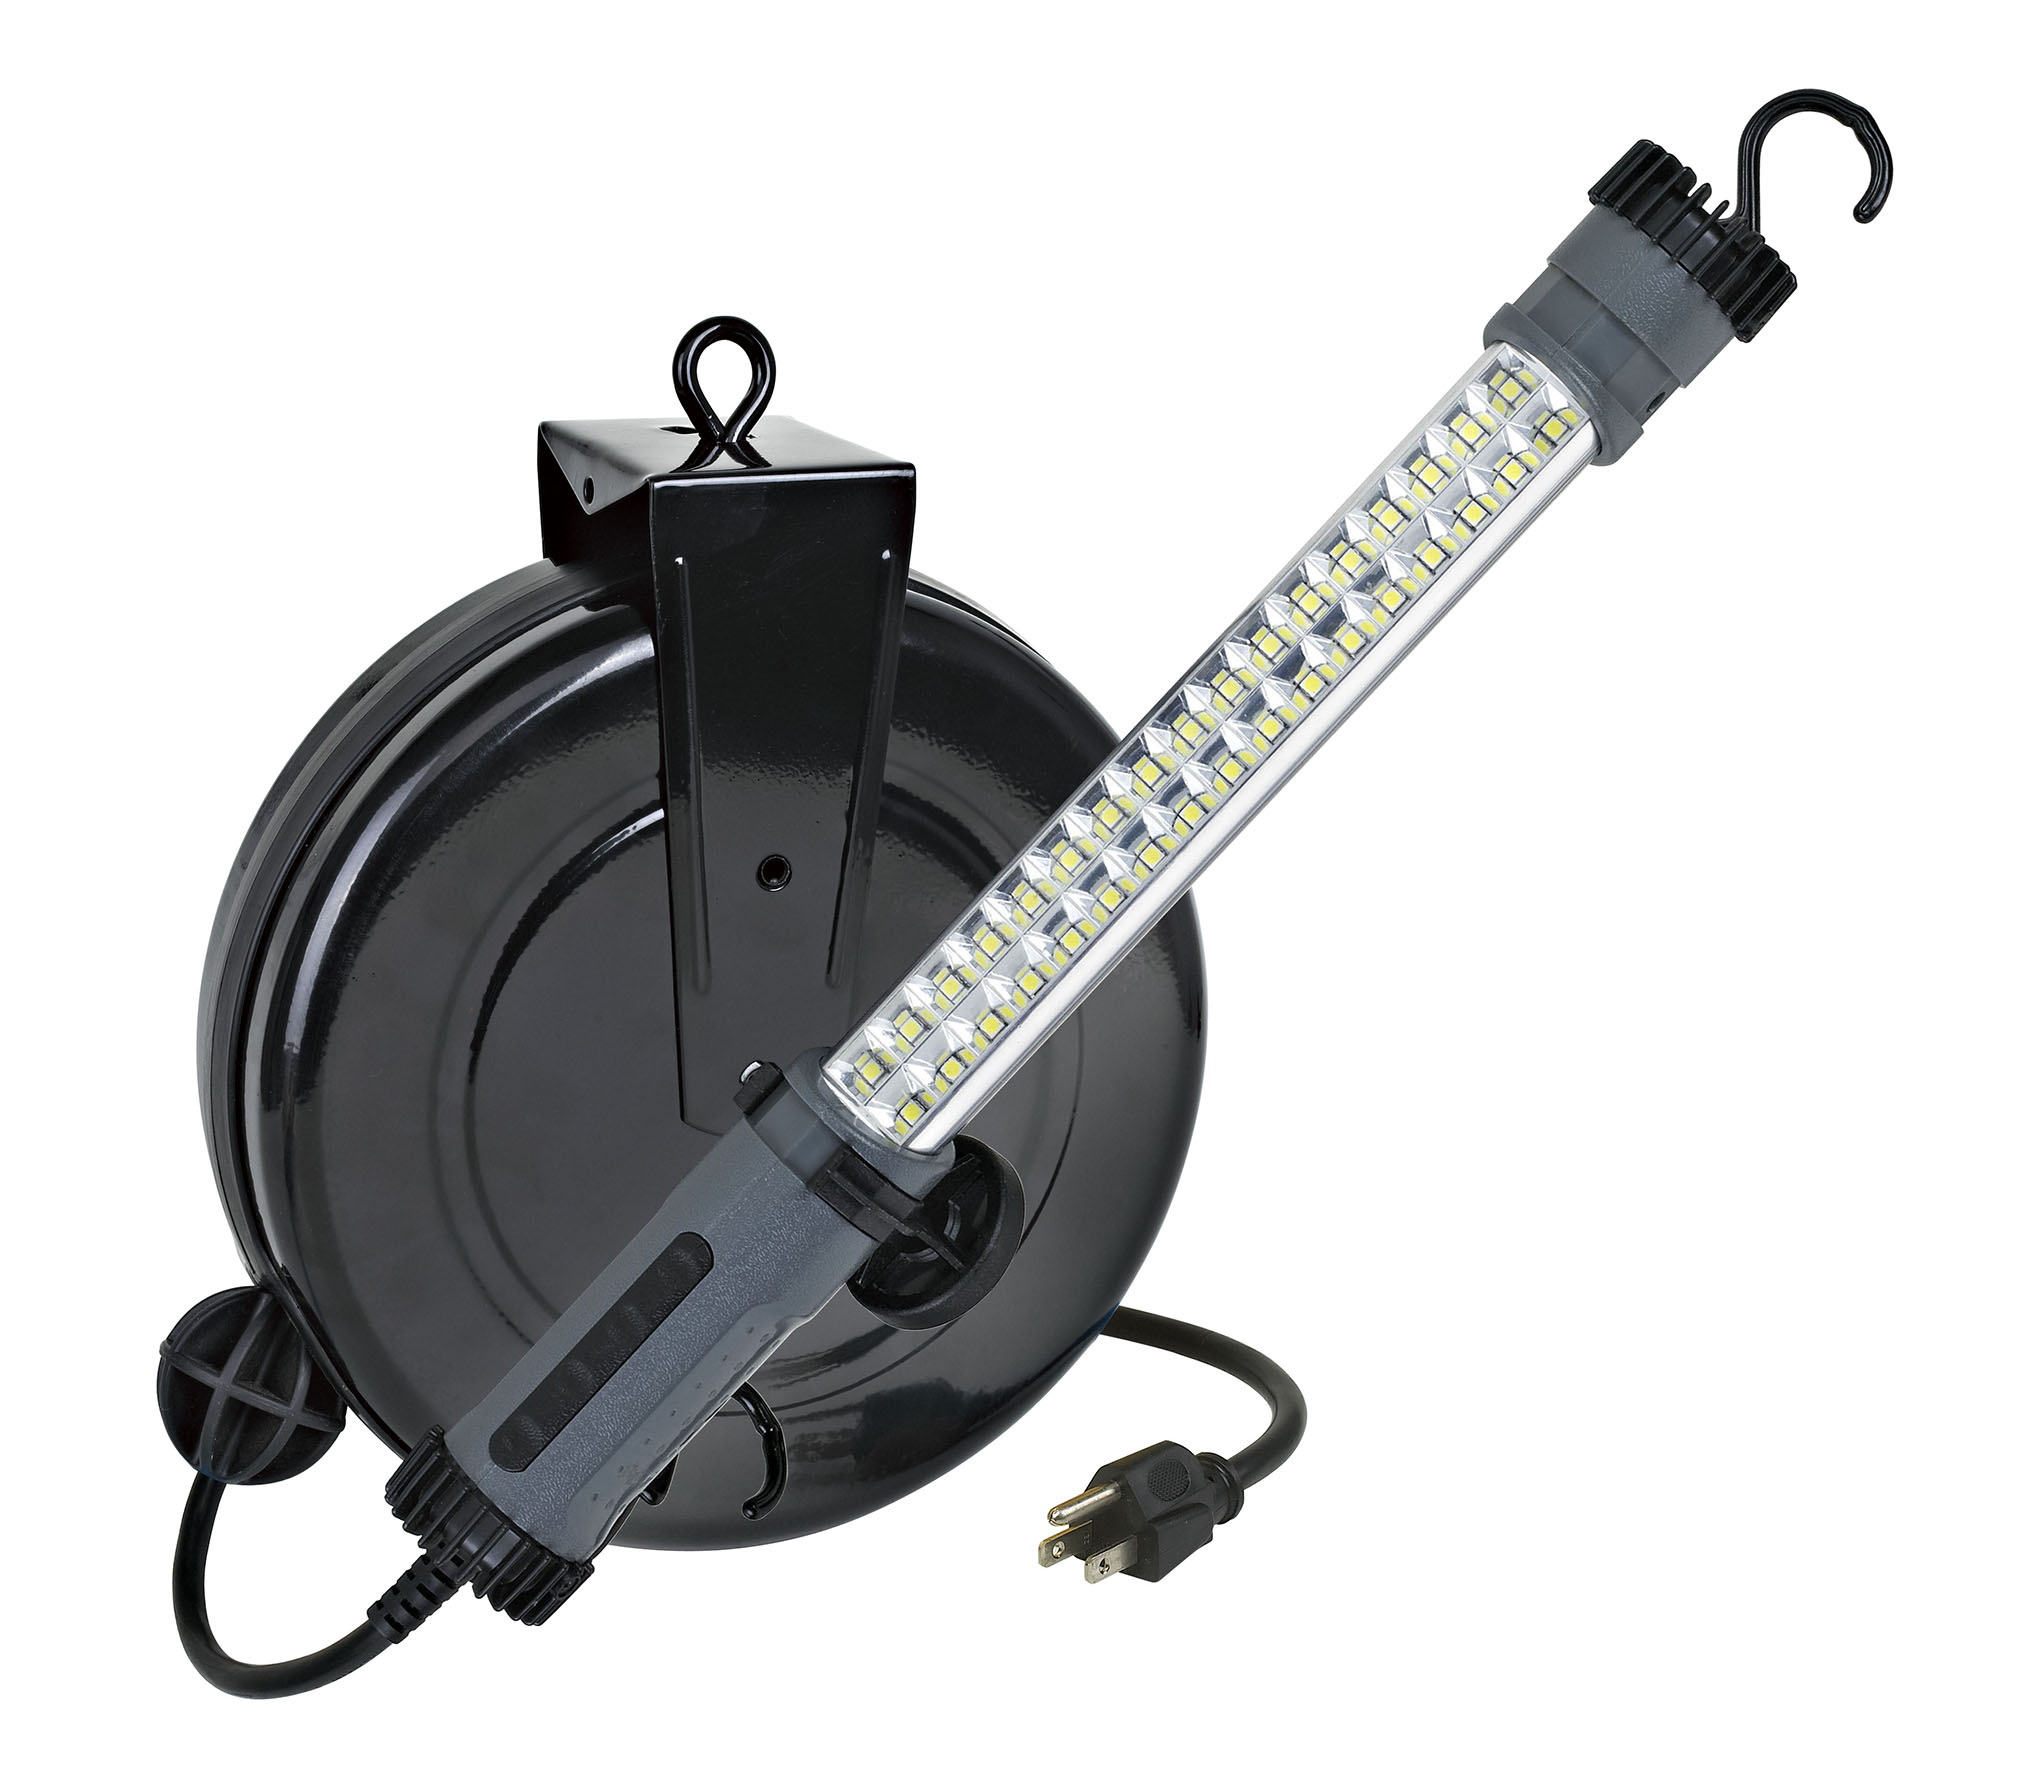 Auto Repair Work Light LED 30 Foot Retractable Cord Reel